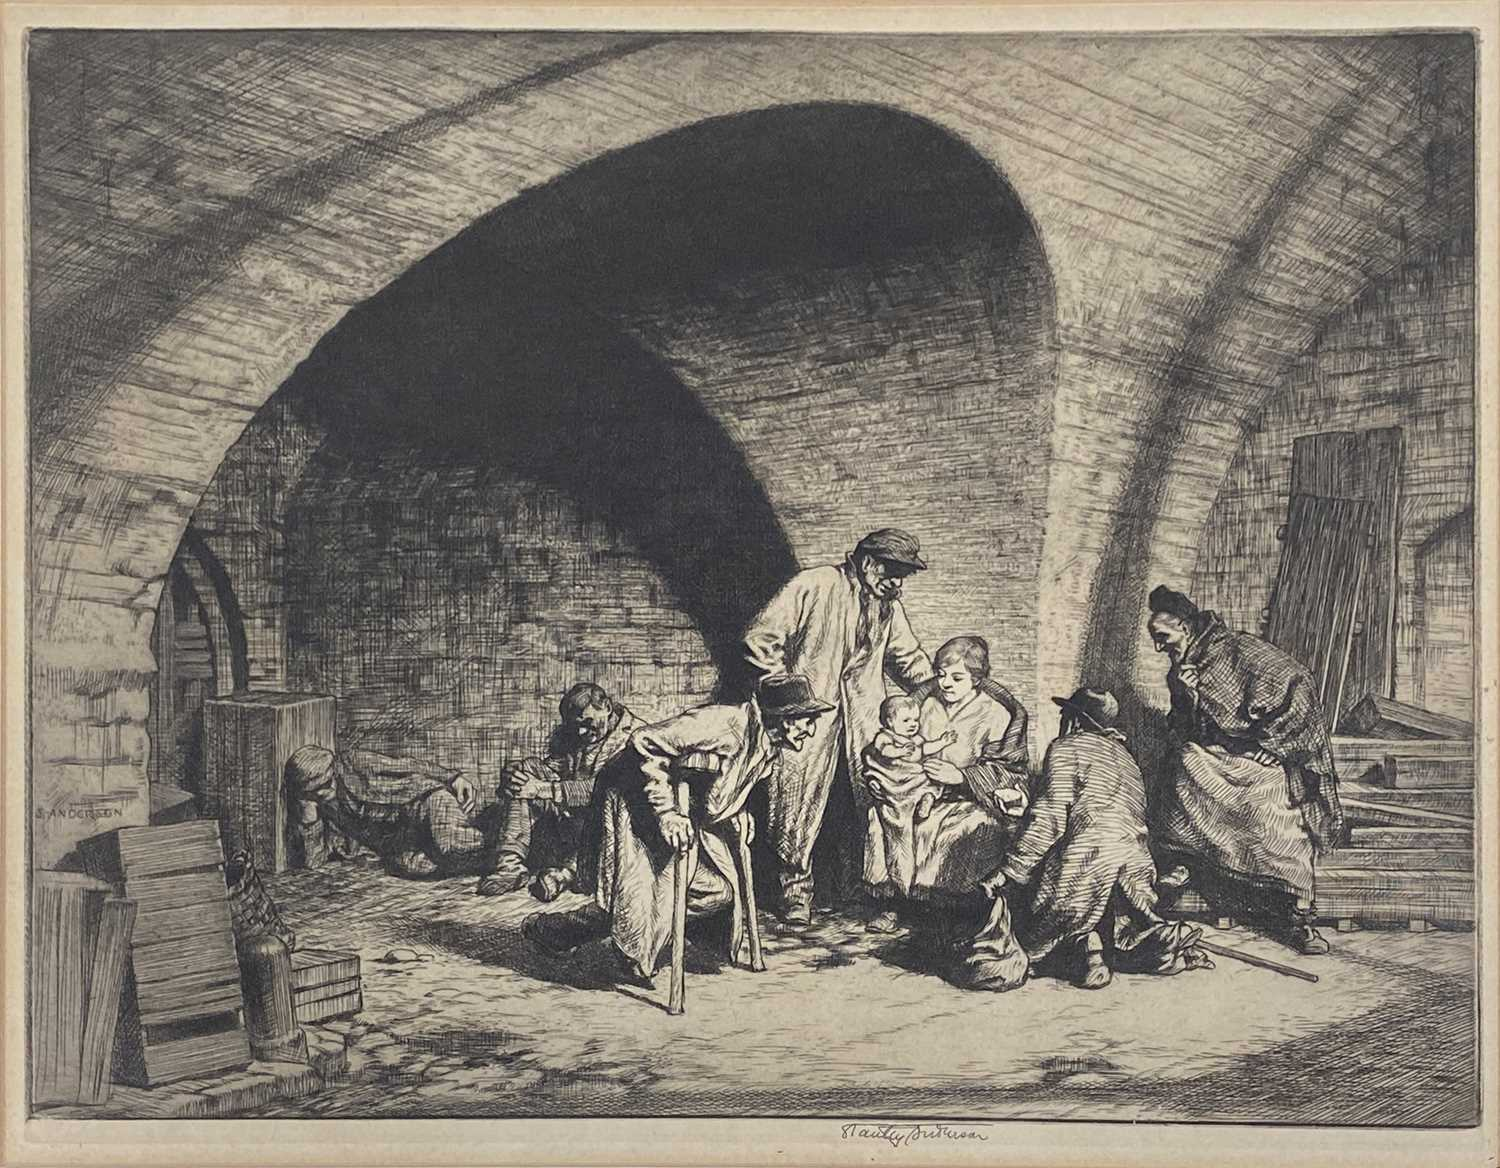 Lot 1025 - Stanley Anderson, Life under the arches